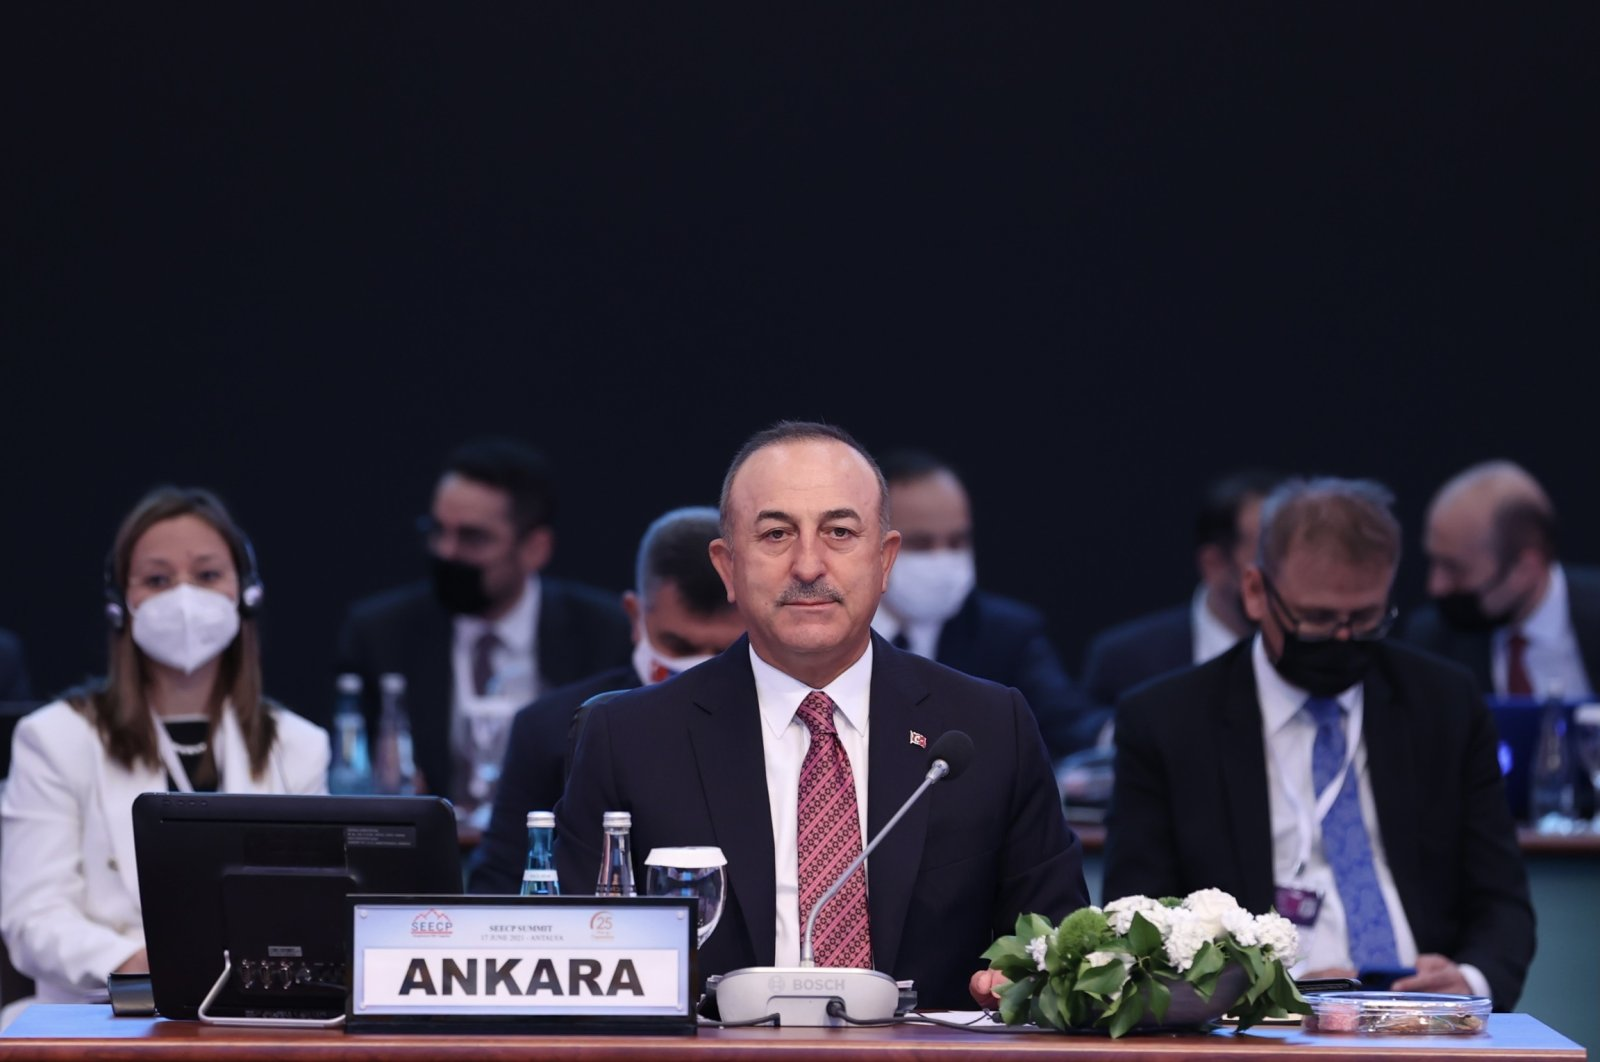 Foreign Minister Mevlüt Çavuşoğlu at the South East European Cooperation Process (SEECP) foreign ministers meeting in Antalya, Turkey, June 17, 2021. (AA Photo)